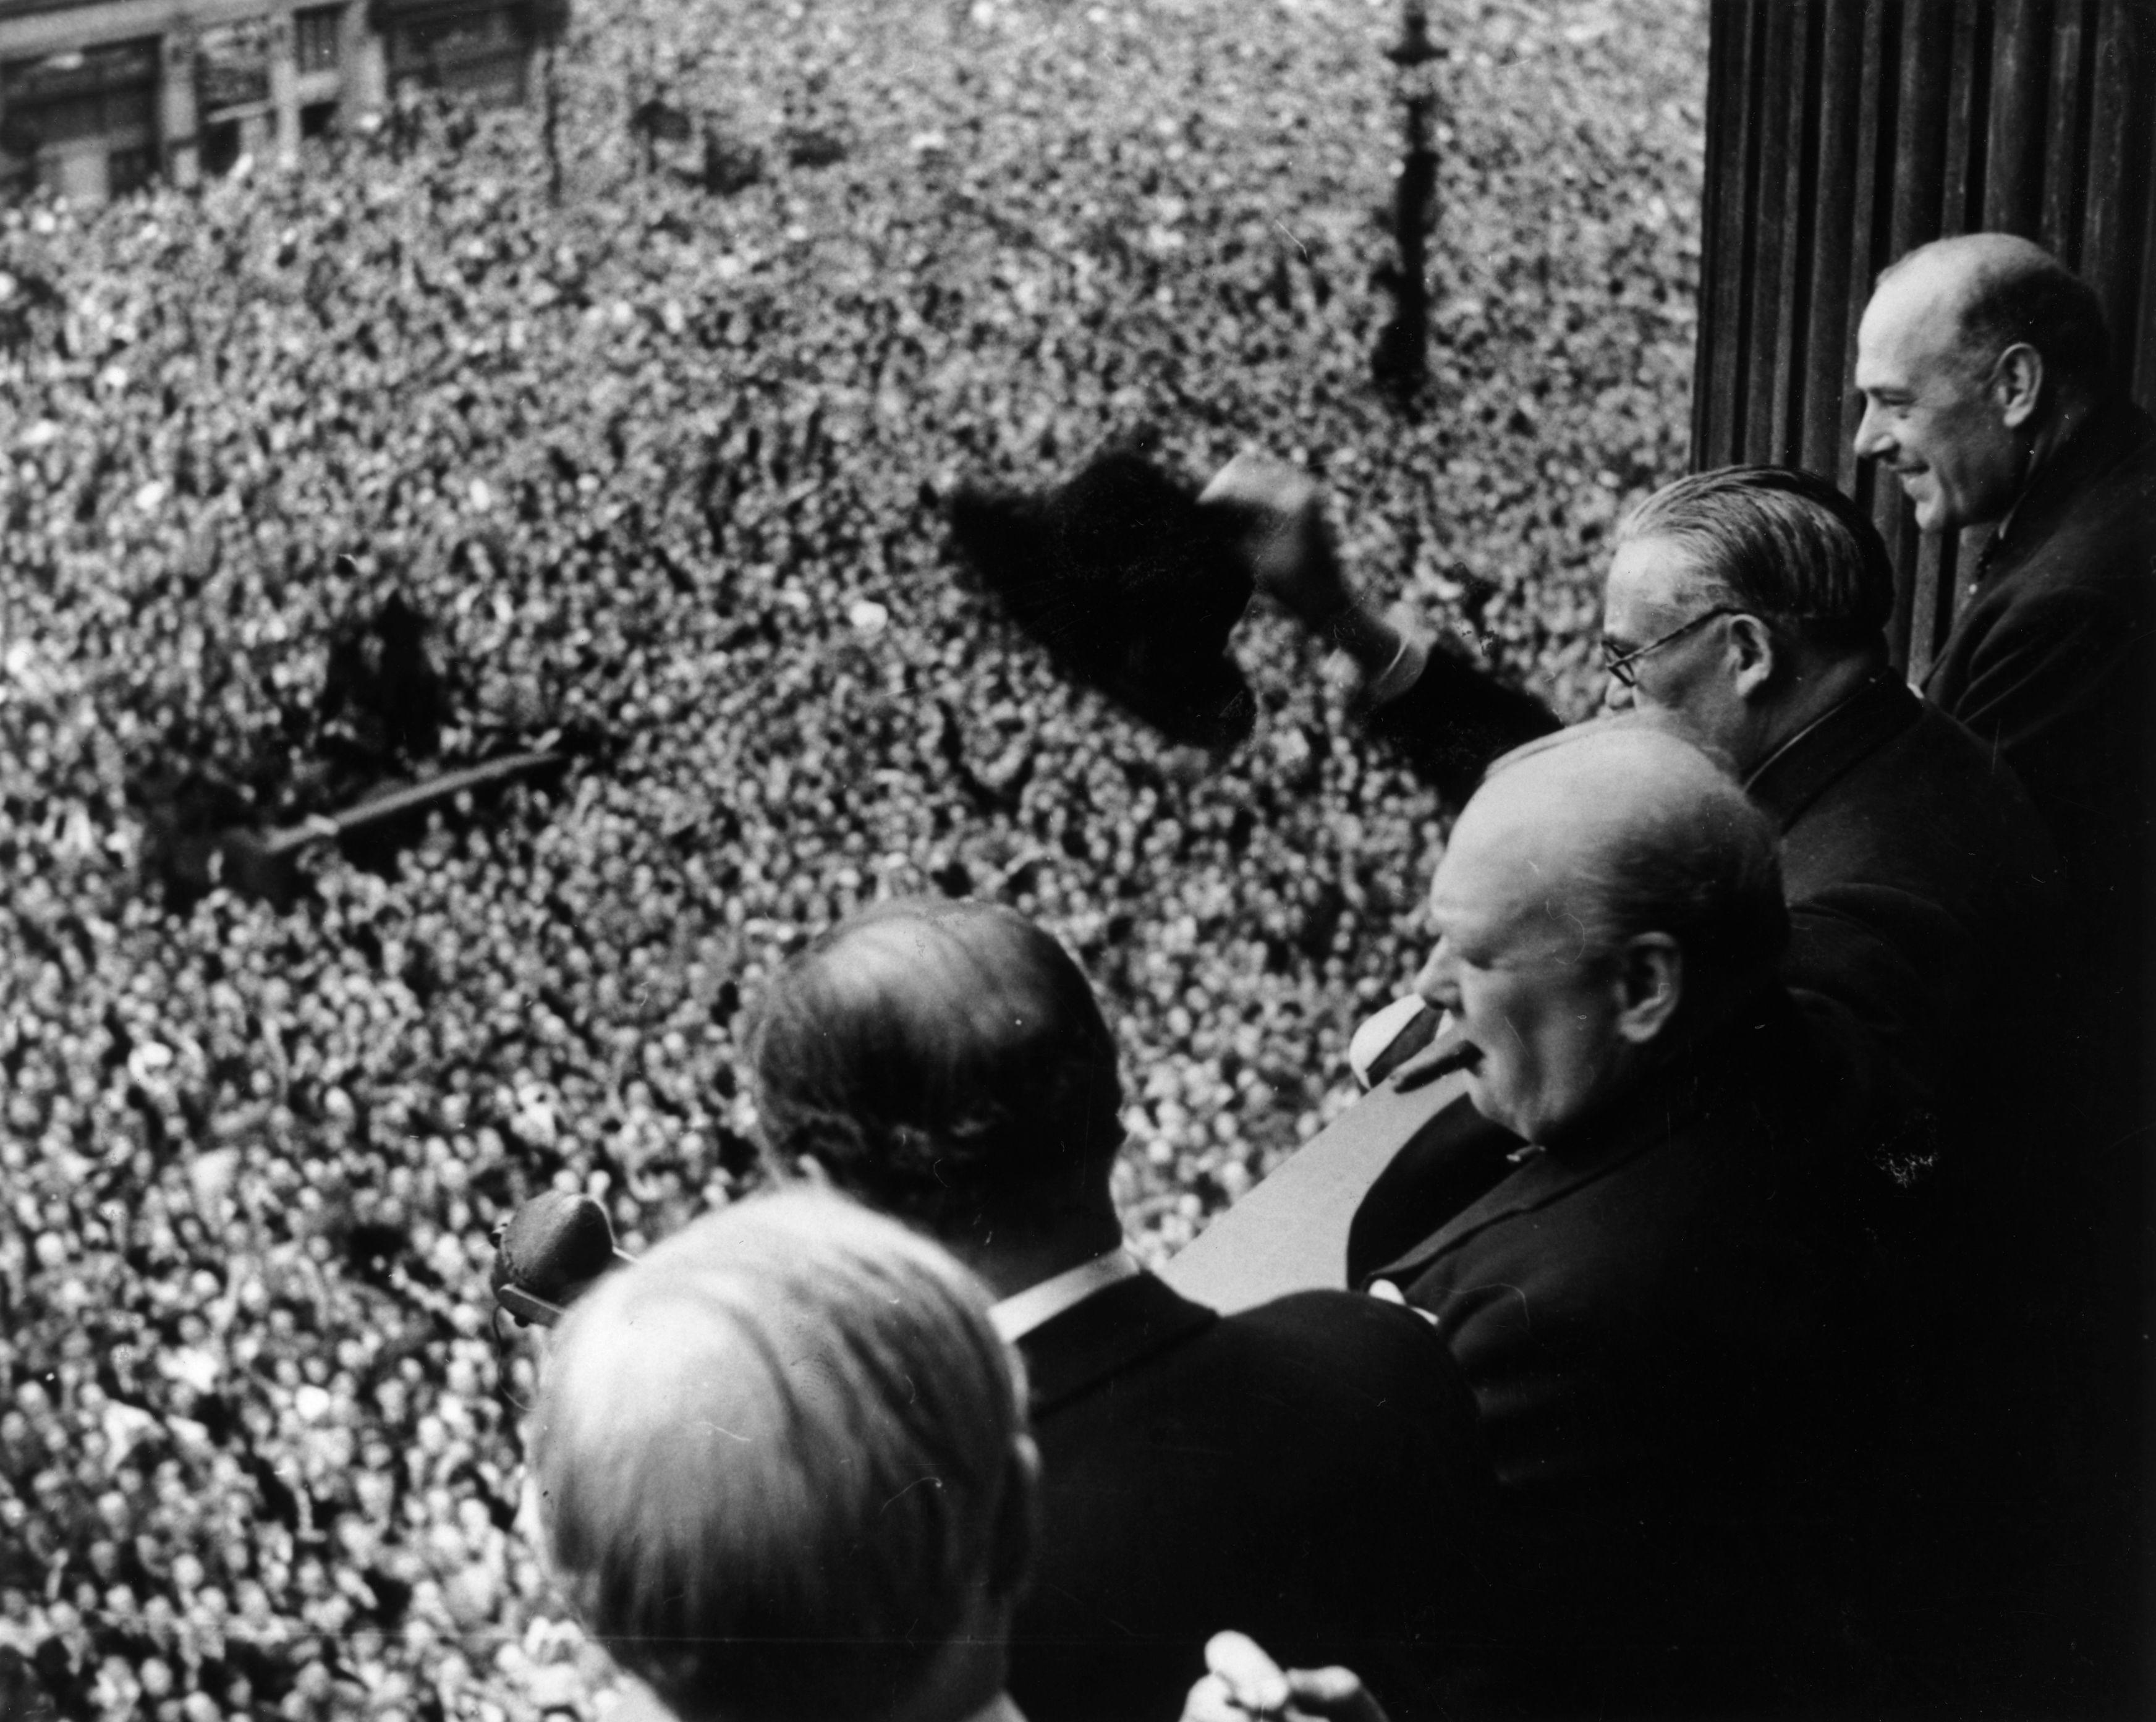 British Prime Minister Winston Churchill (1874 - 1965) waving to crowds gathered in Whitehall on VE Day, 8th May 1945. (Photo by Keystone/Hulton Archive/Getty Images)